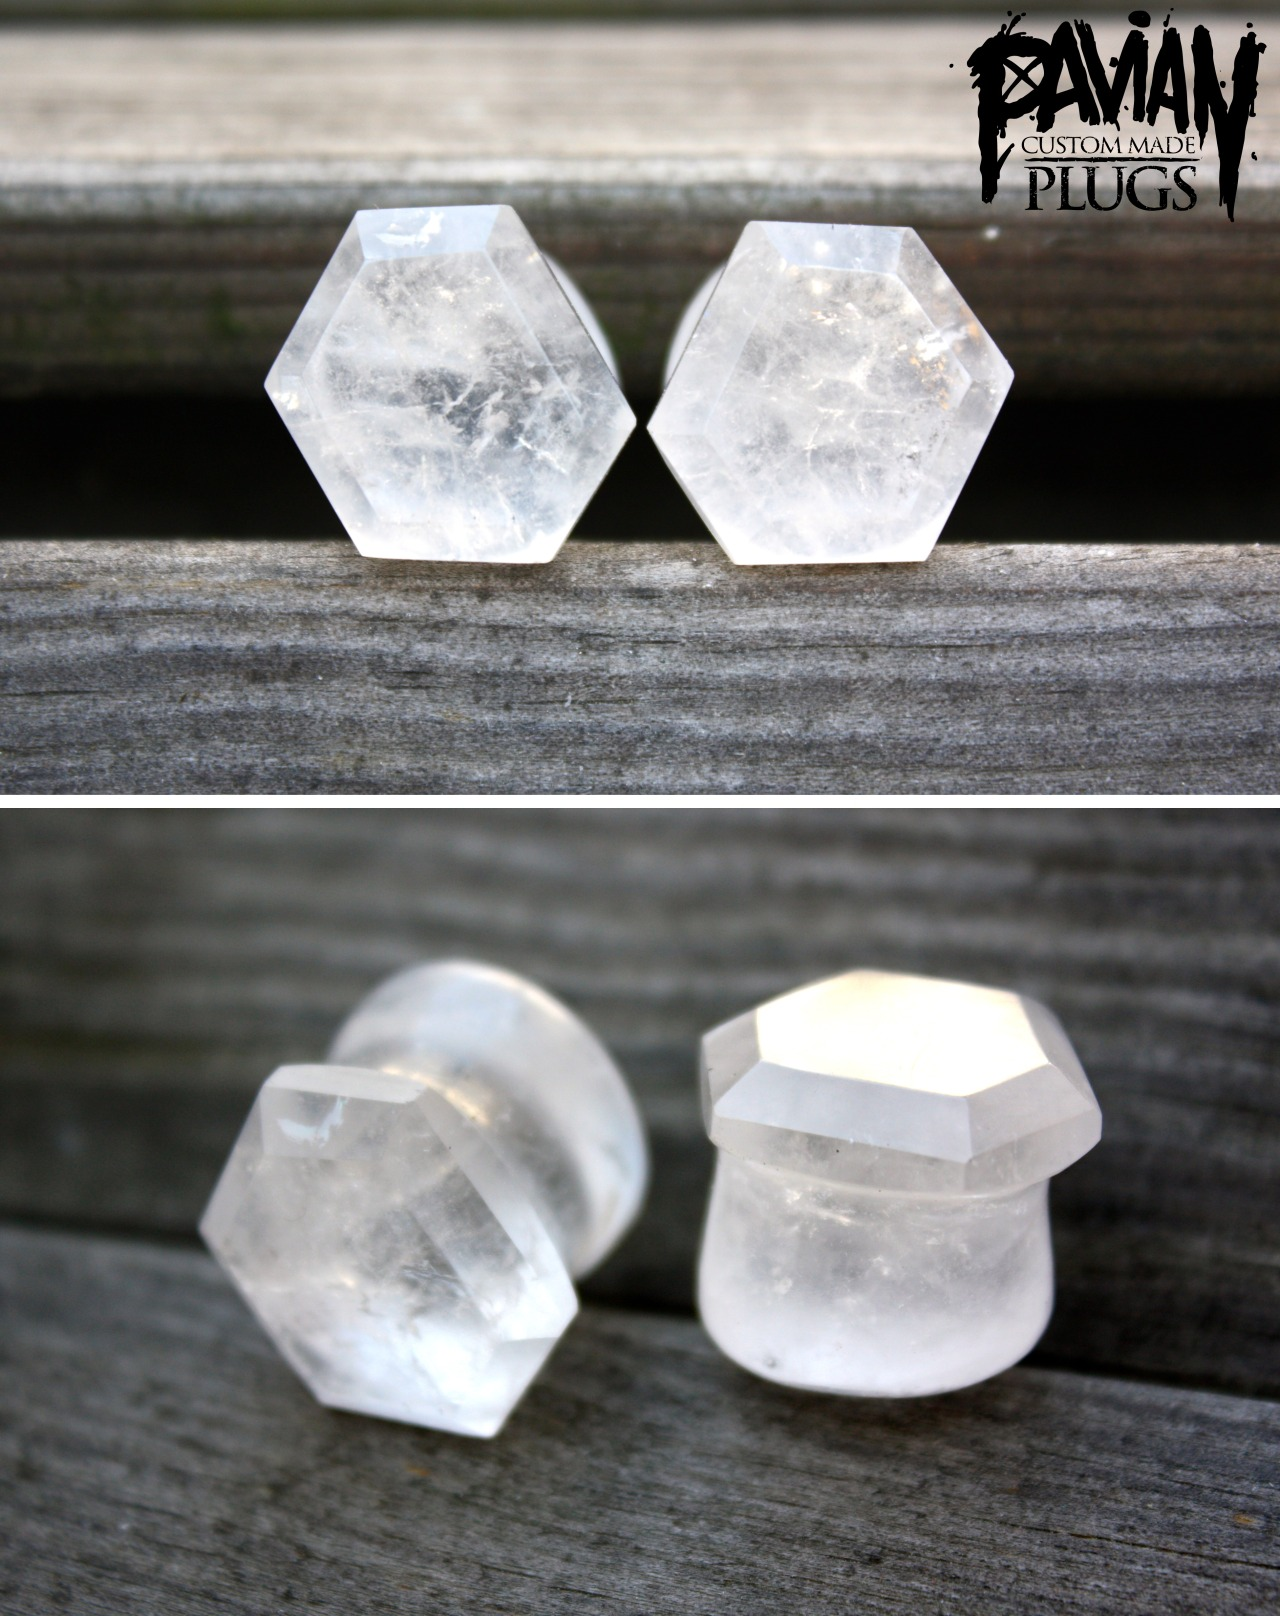 17mm quartz plugs. Freeform hexagon faceted cut. faceted by hand.